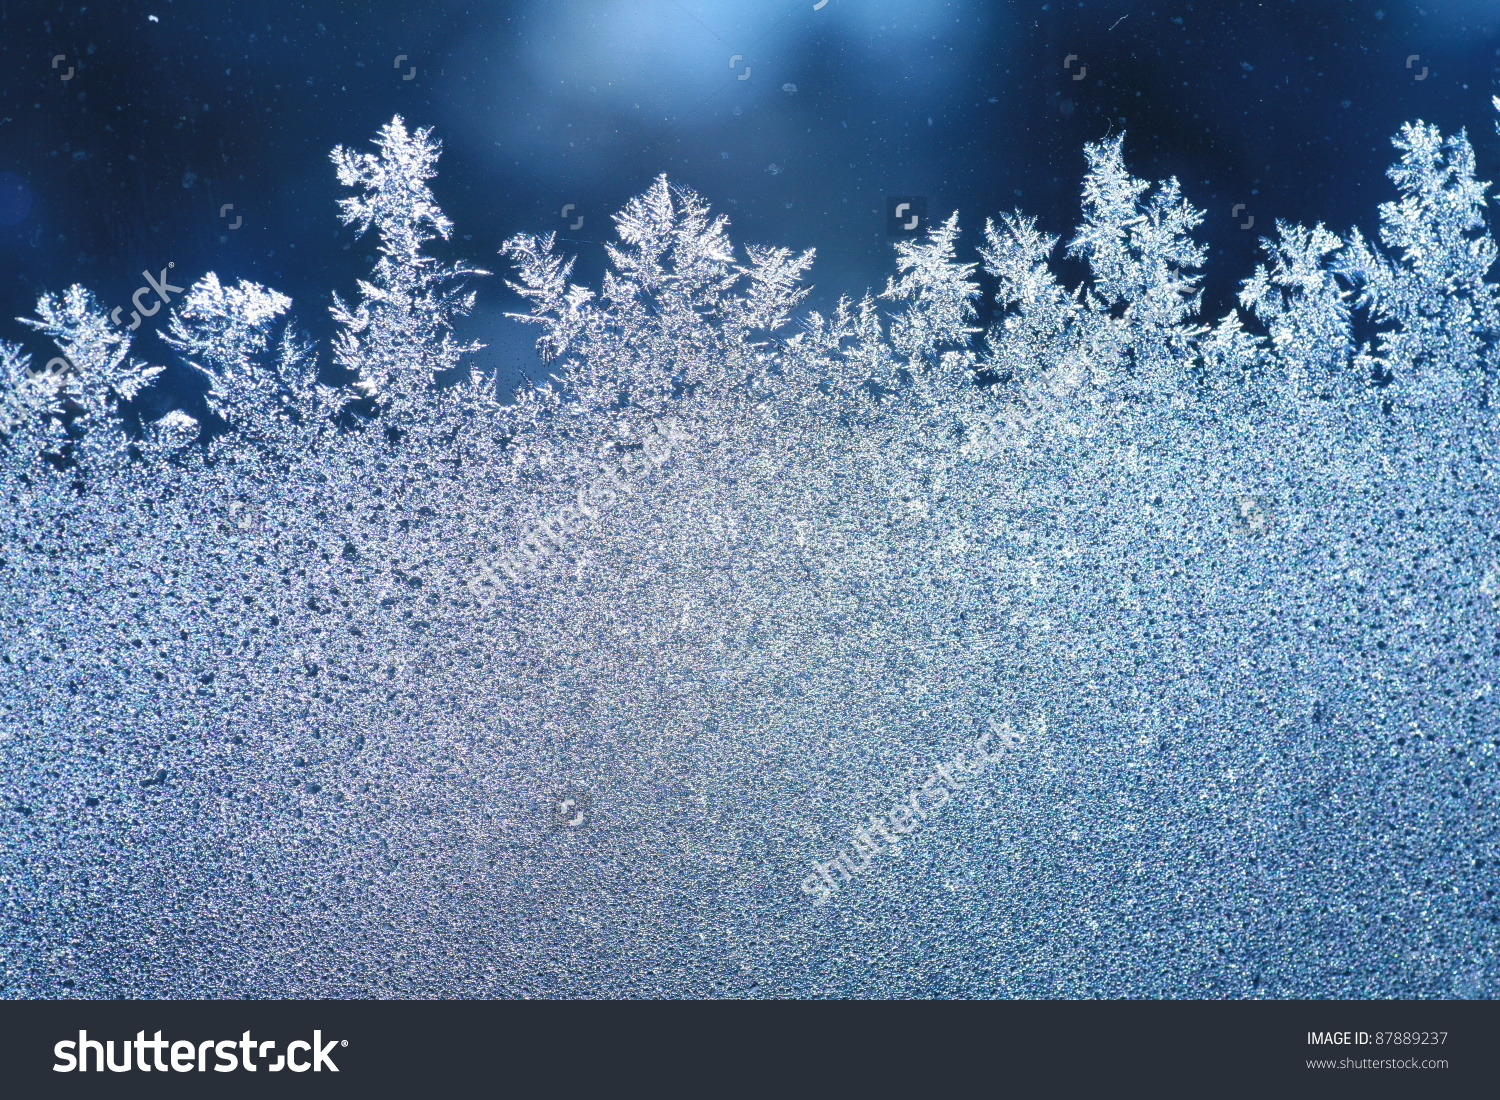 Patterns Made By Frost On Window Stock Photo 87889237.